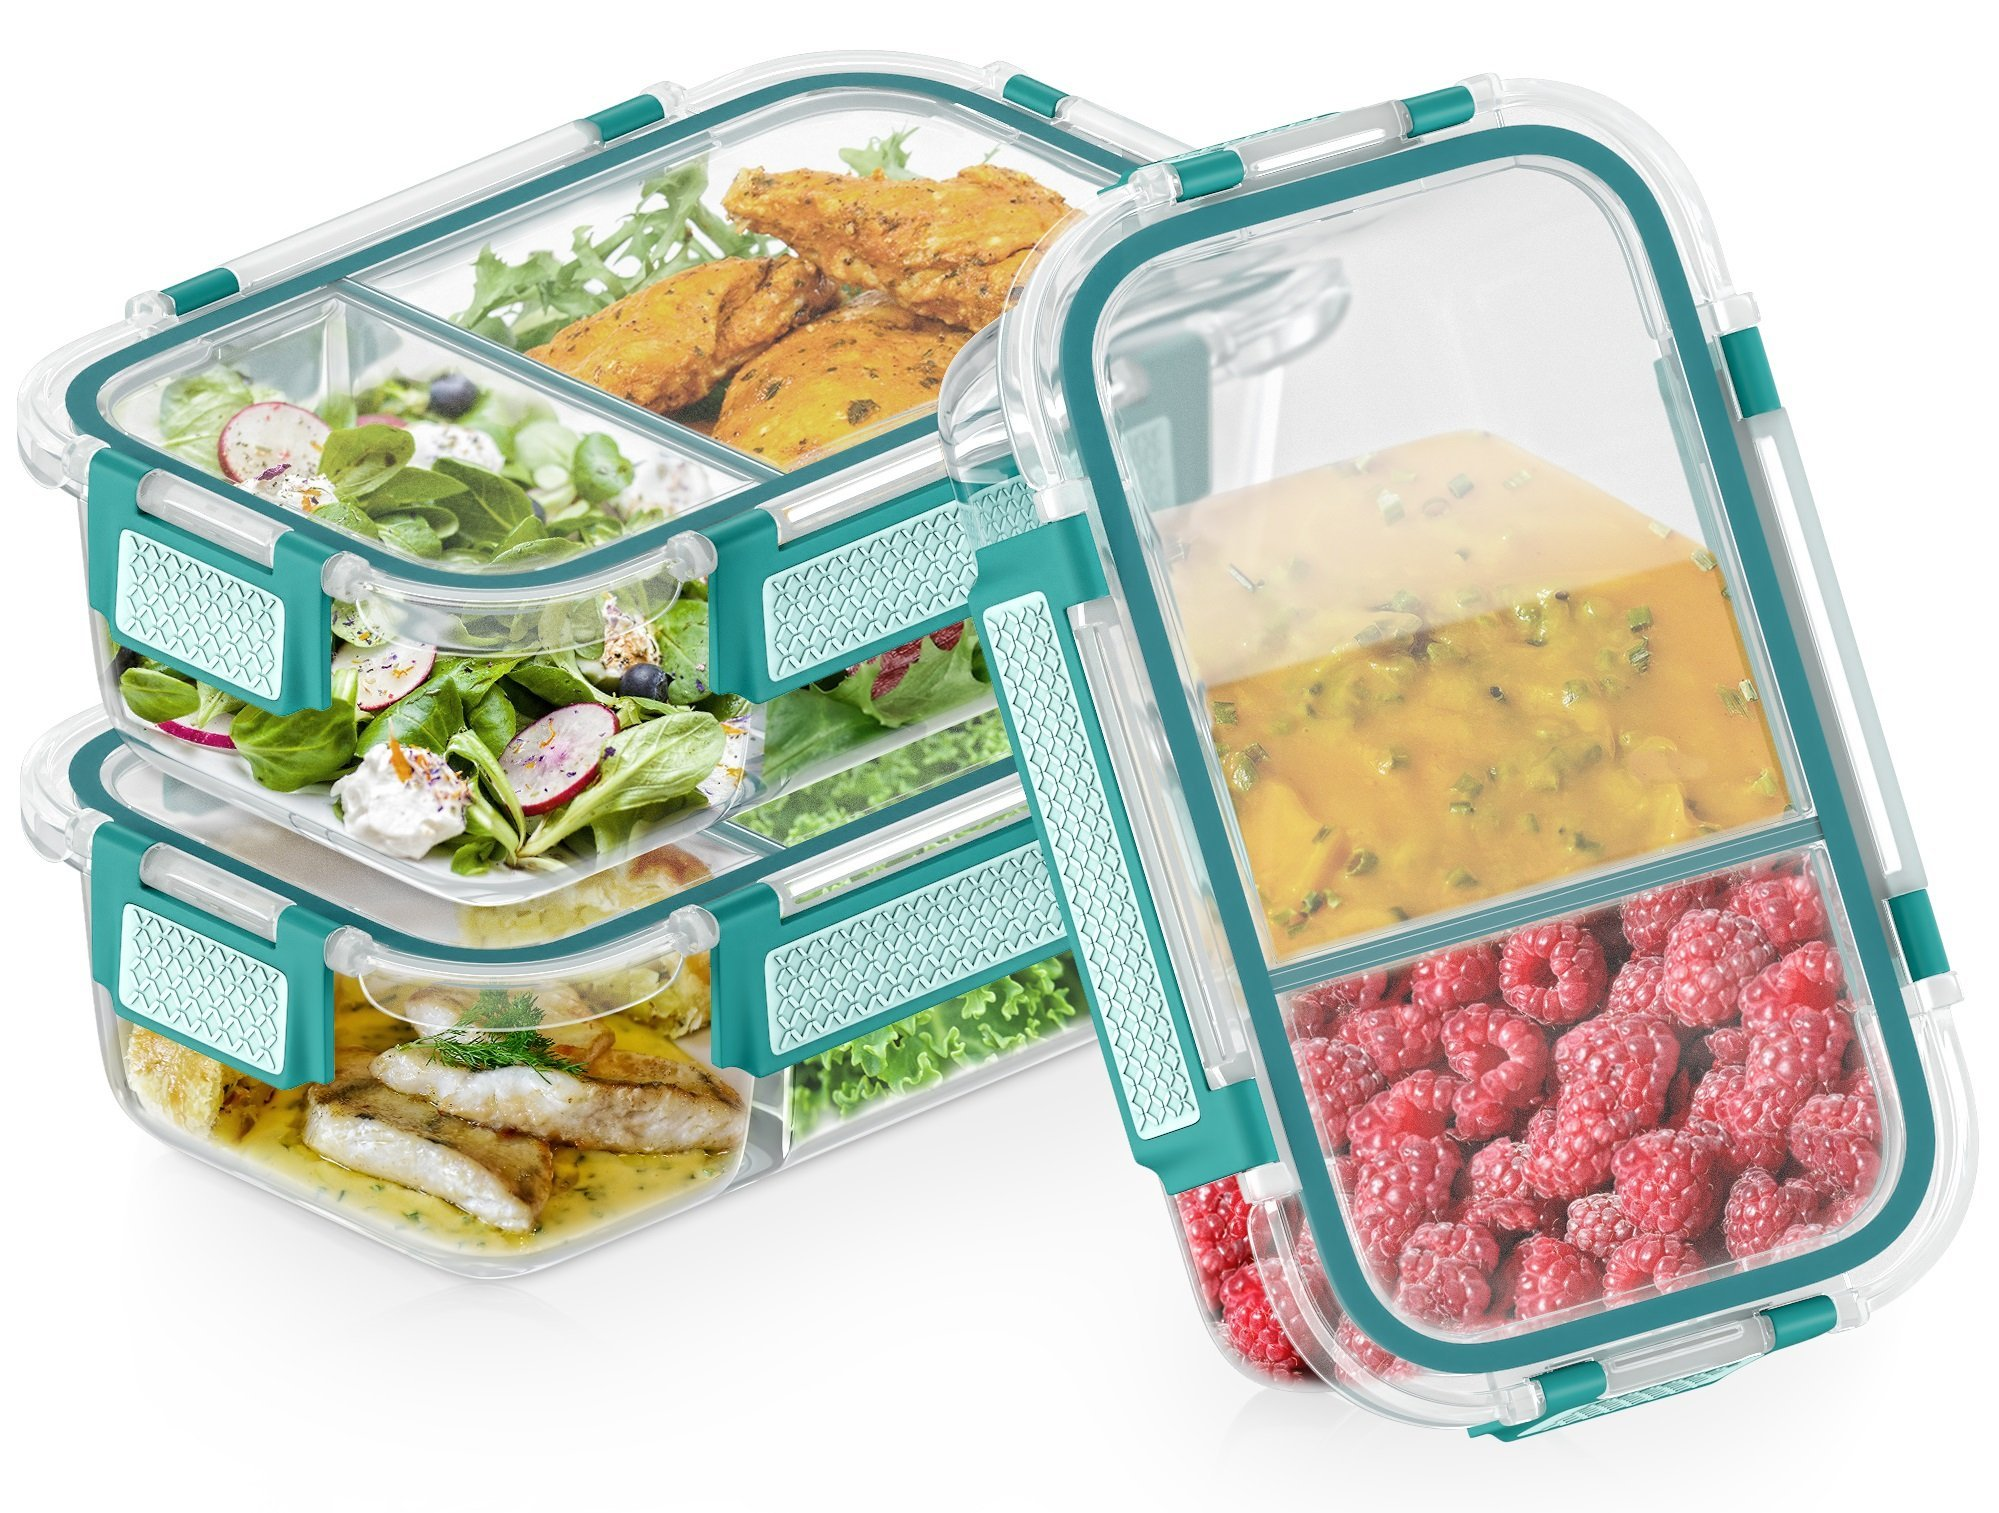 (3 Pack) 2-Compartment Glass Meal Prep Containers Microwavable with Green Airtight Snap-Locking Lids - Lunch Containers with NEW DIVIDER SEAL TECHNOLOGY Food Storage Containers BPA Free (36 oz)